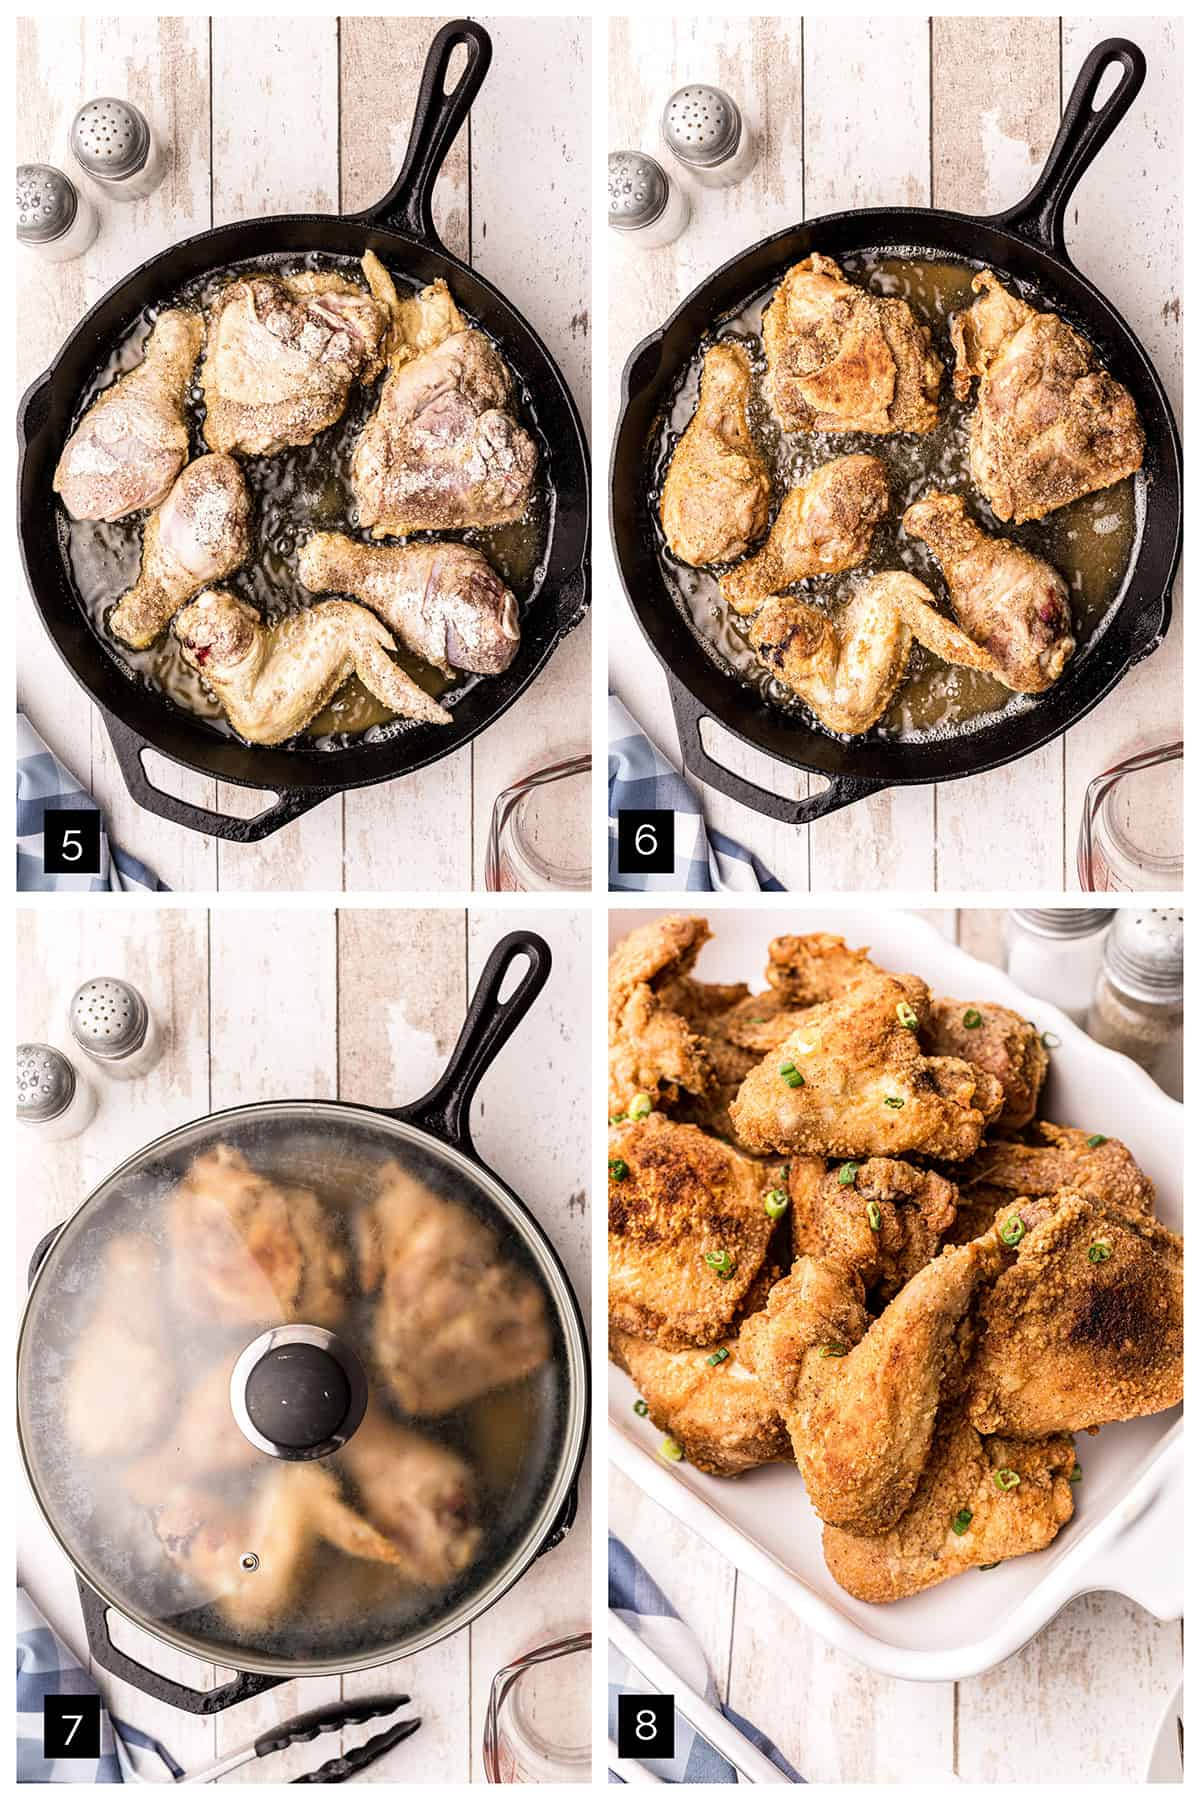 Photo collage showing steps 5 through 8 for cooking the chicken.